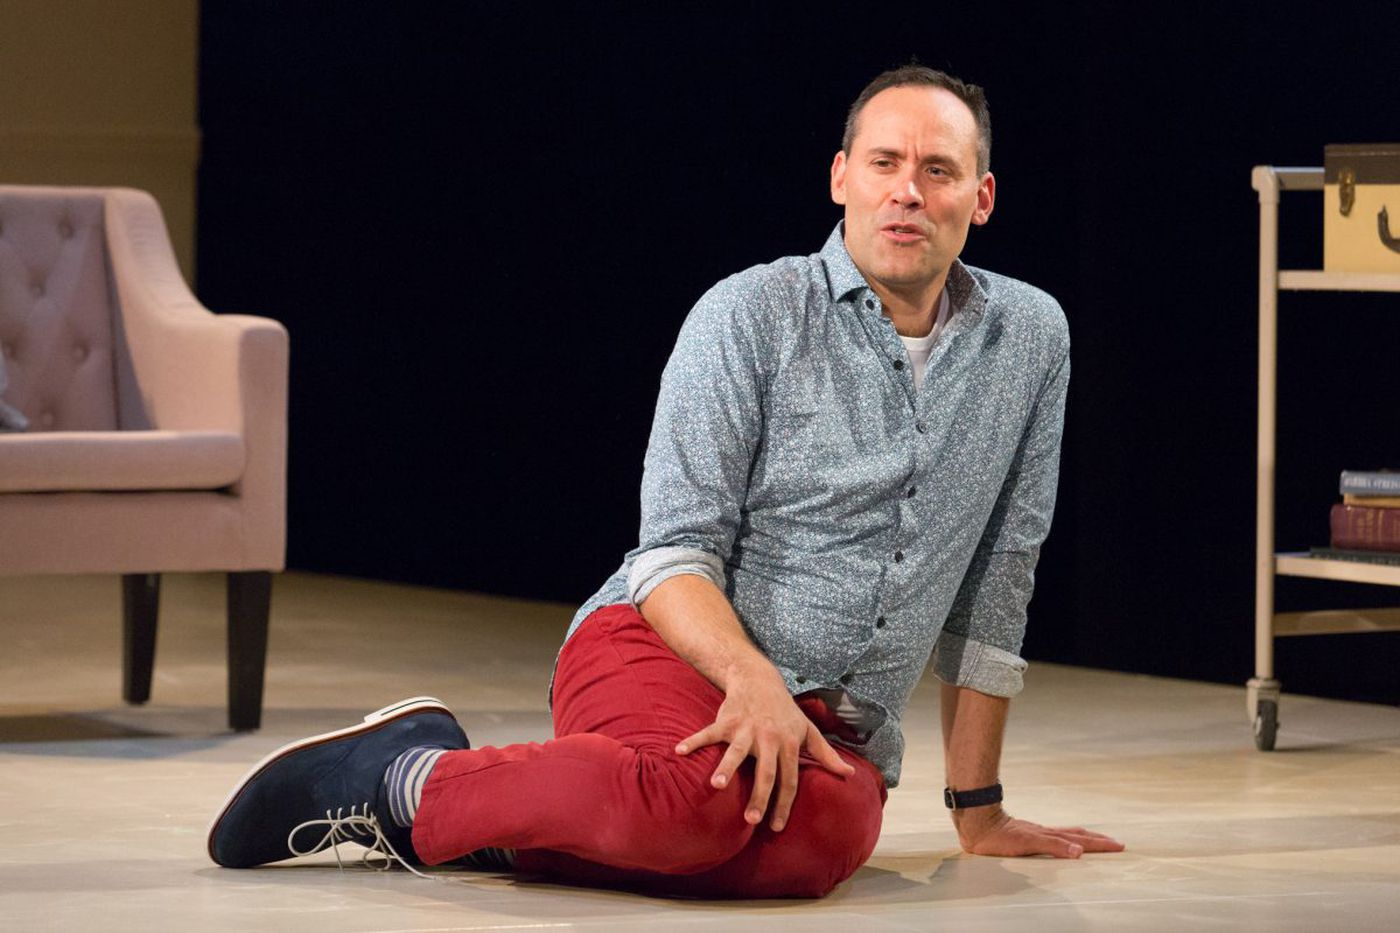 From Martha Graham Cracker to Barbra Streisand: Dito van Reigersberg is brilliant in celebrity satire 'Buyer & Cellar'